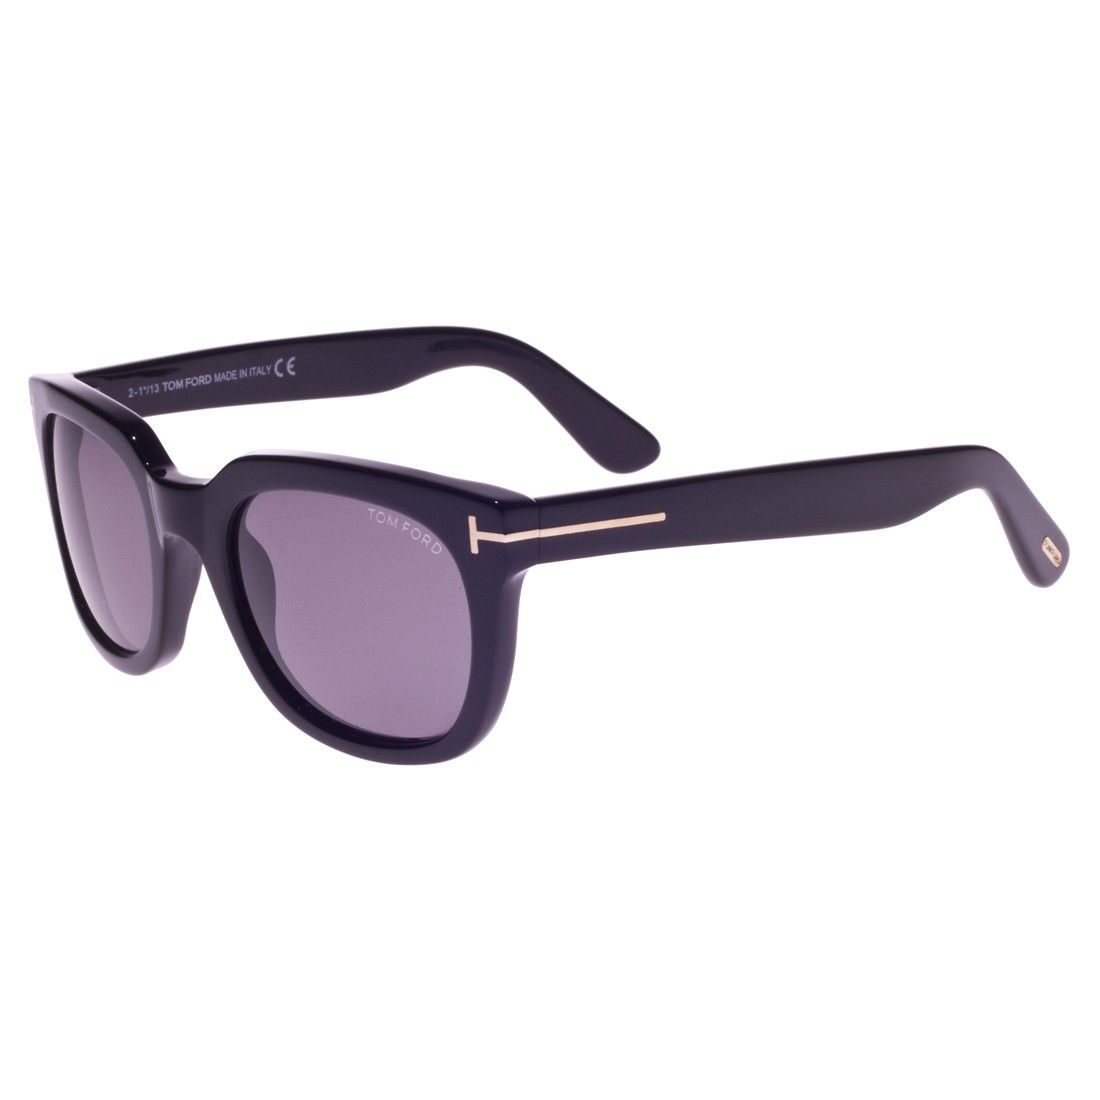 2d161d190bbe Tom Ford TF0198 01A Campbell Black Sunglasses